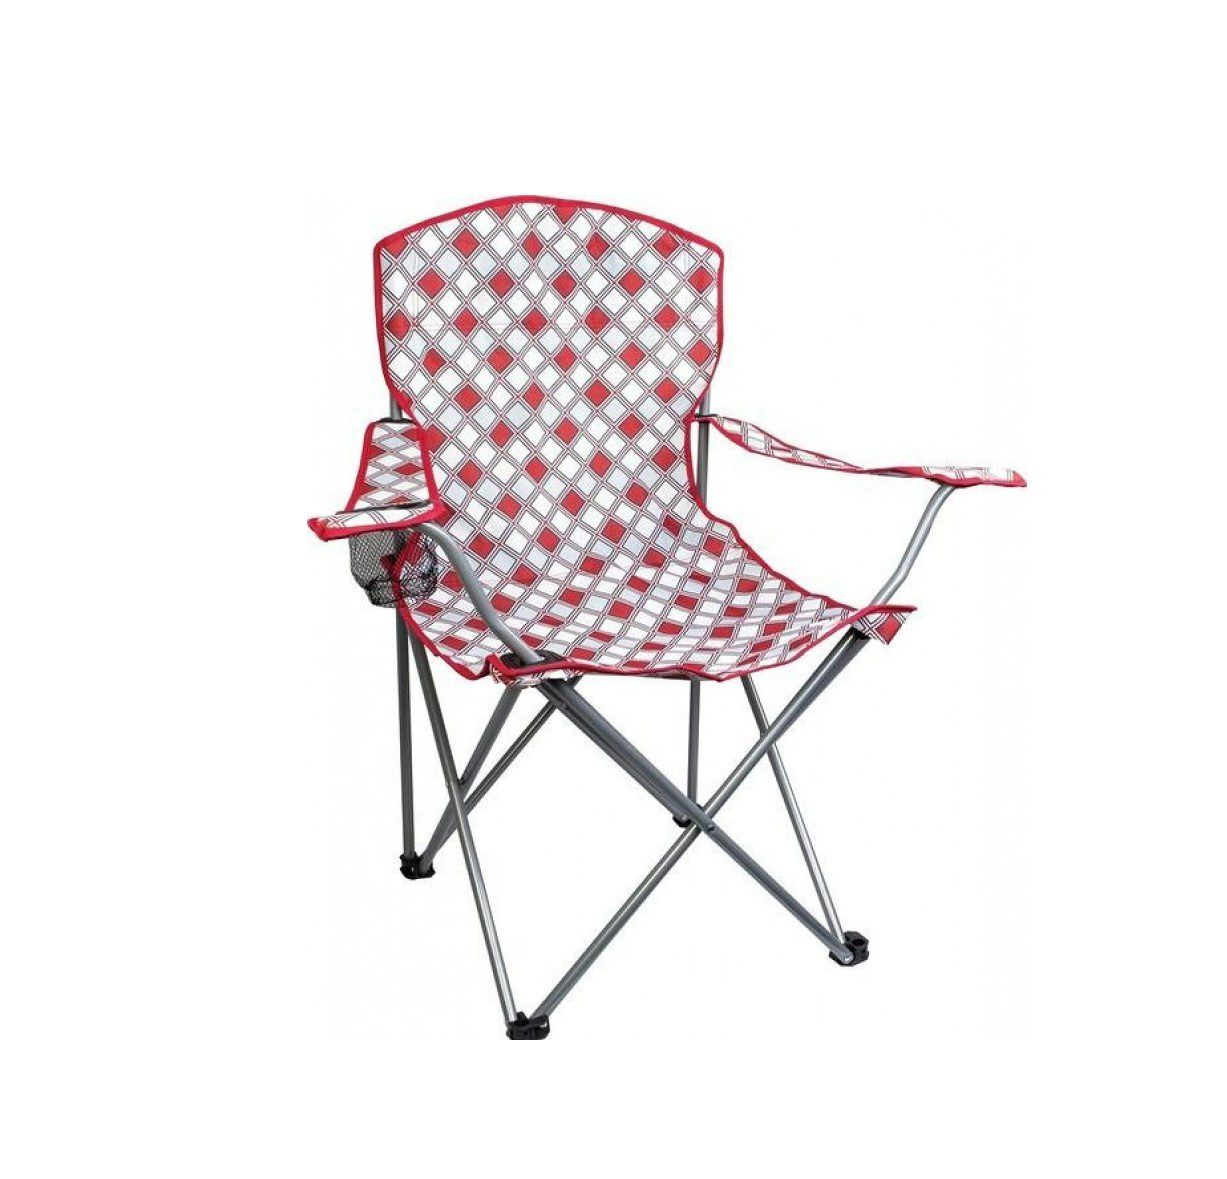 Highlander Moray Folding Chair